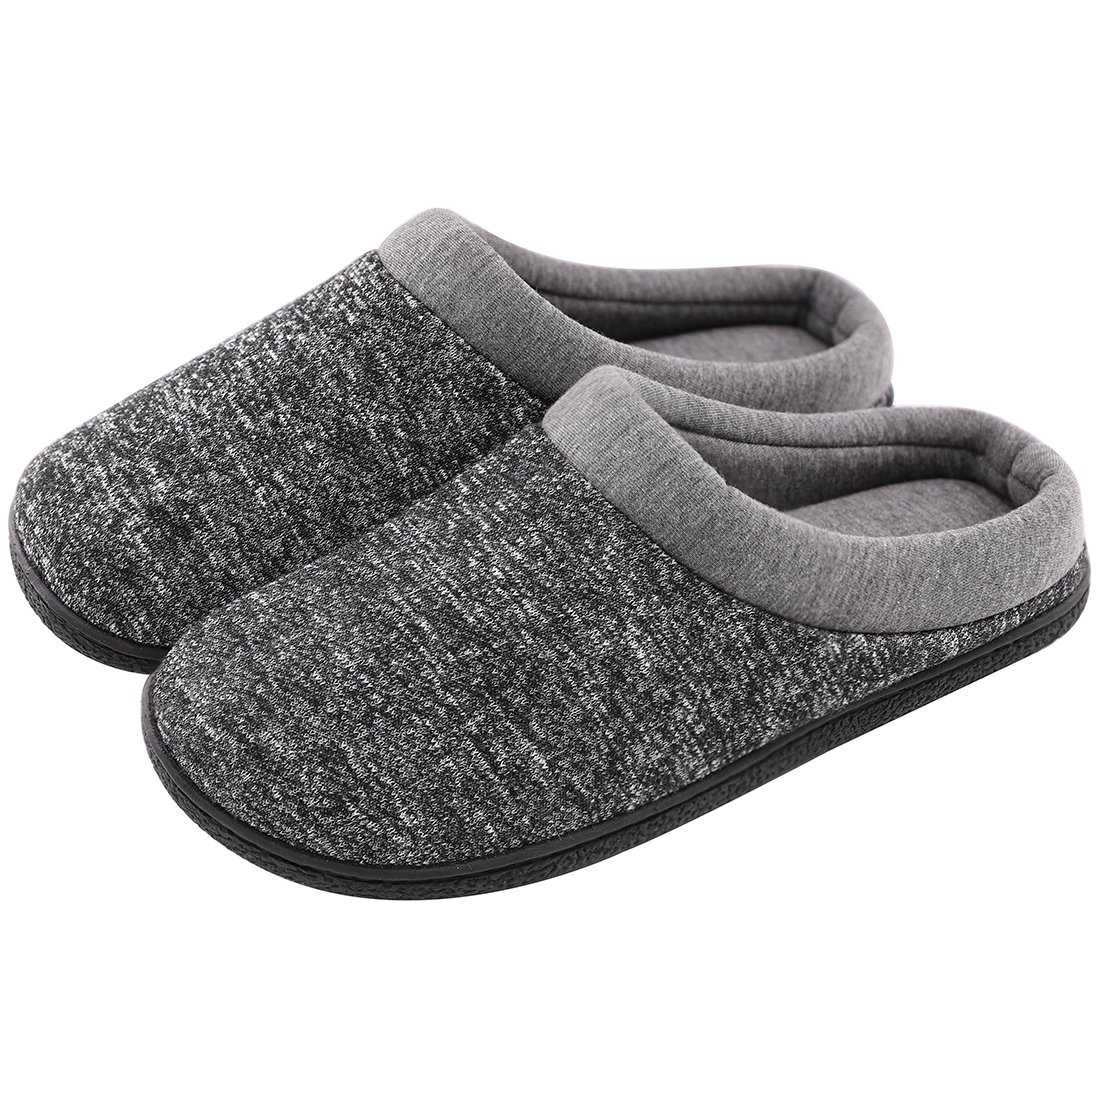 HomeTop Men's Comfort Breathable Moisture-Wicking Spring Summer Slip On Memory Foam House Slippers Shoes Indoor/Outdoor (11-12 D(M) US, Gray)